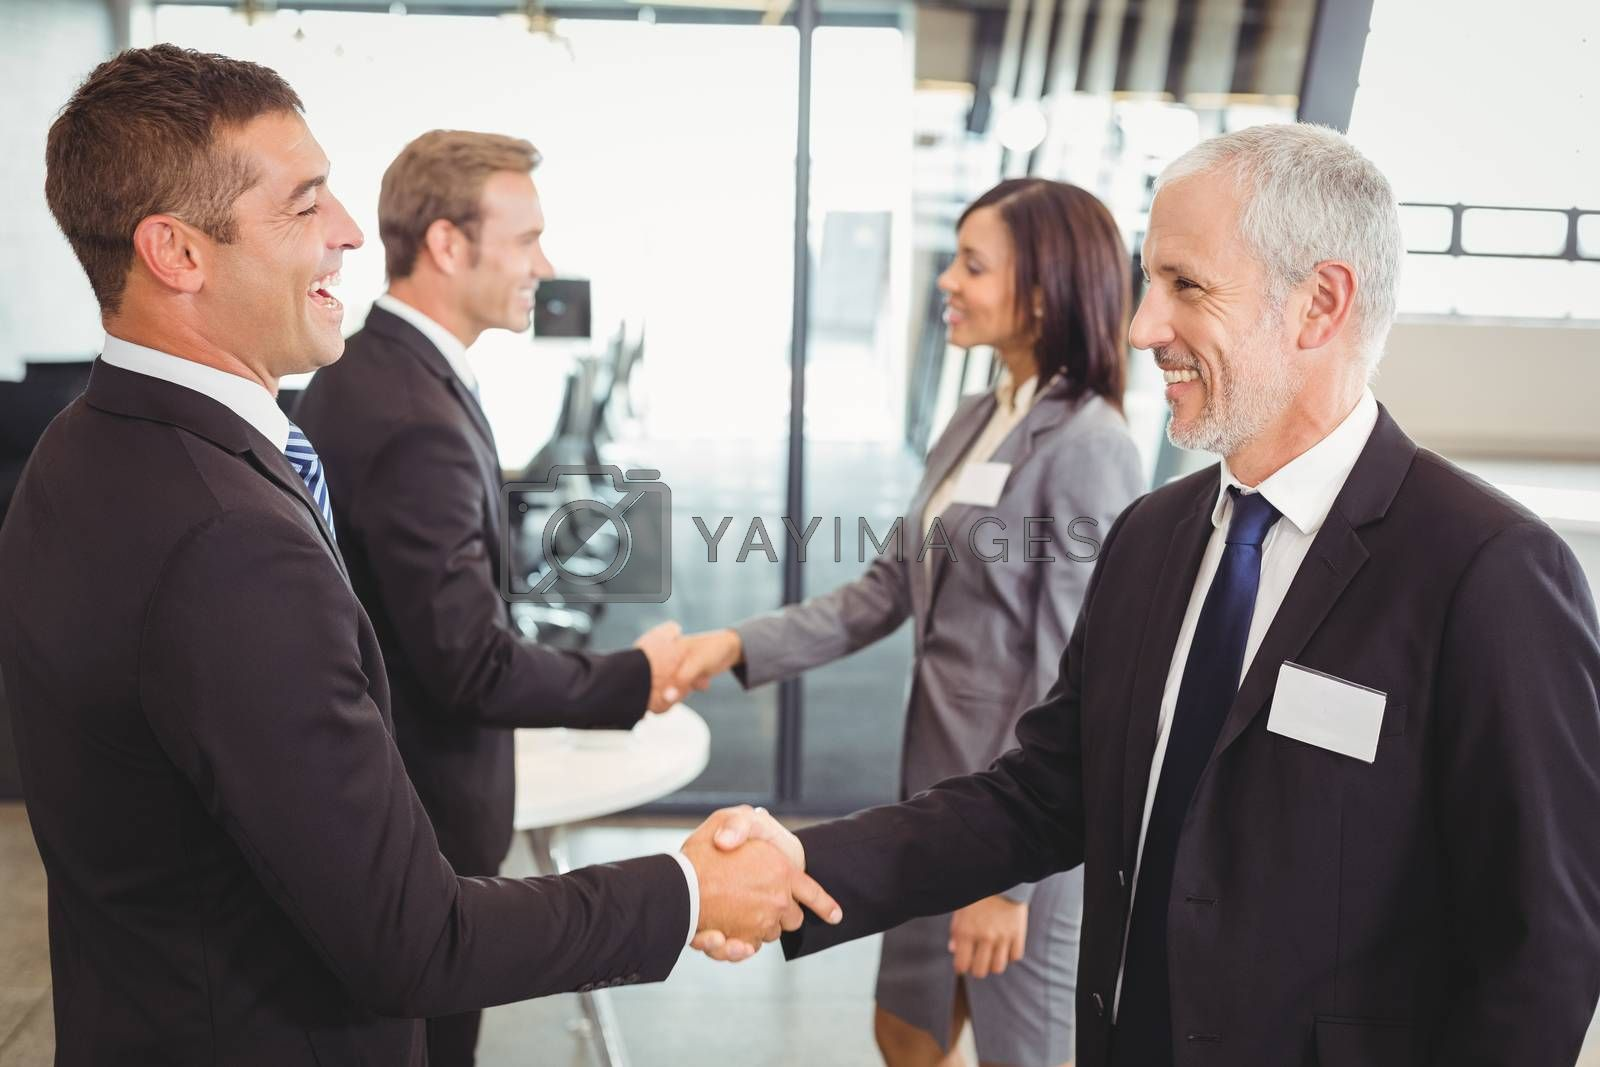 Businesspeople shaking hands with each other in the office